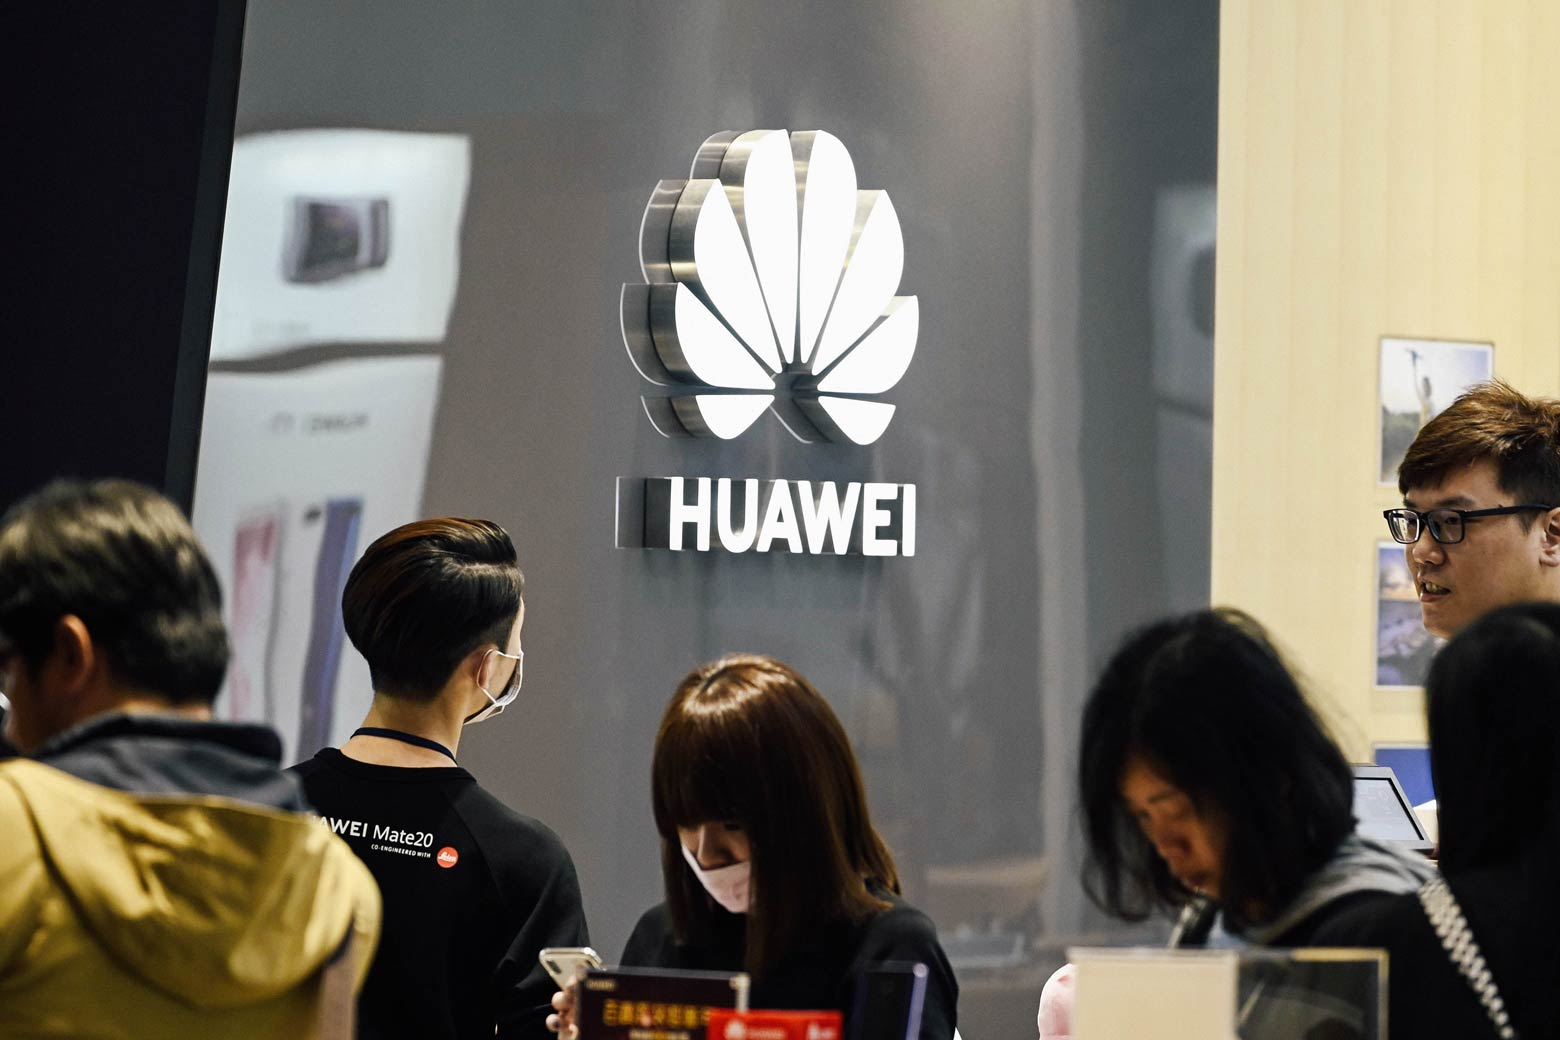 People stand next to a Huawei logo at a mall.